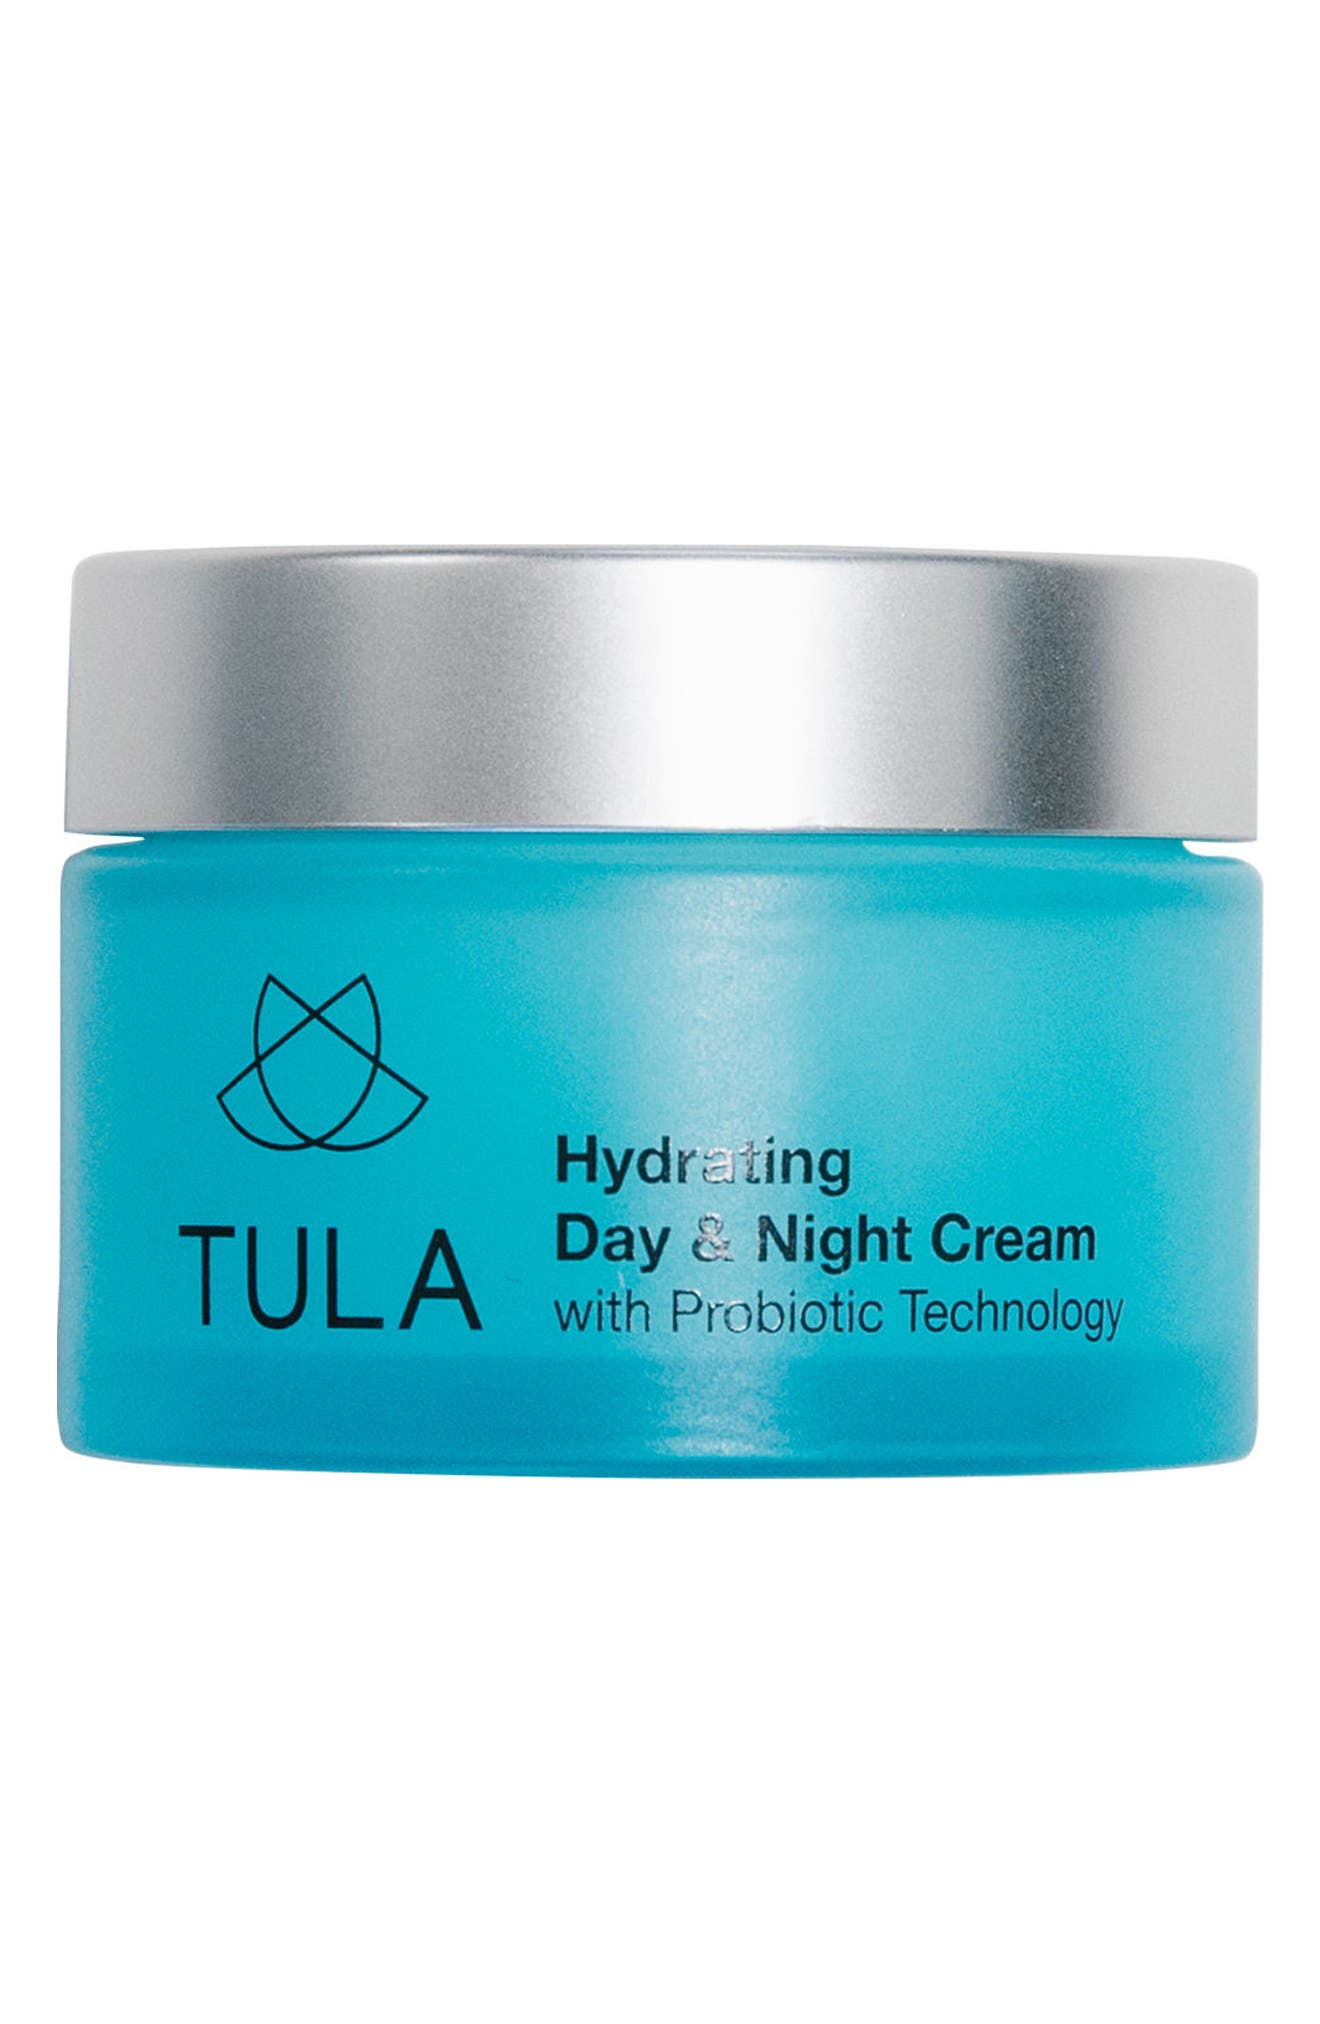 Hydrating Day & Night Cream,                         Main,                         color, No Color